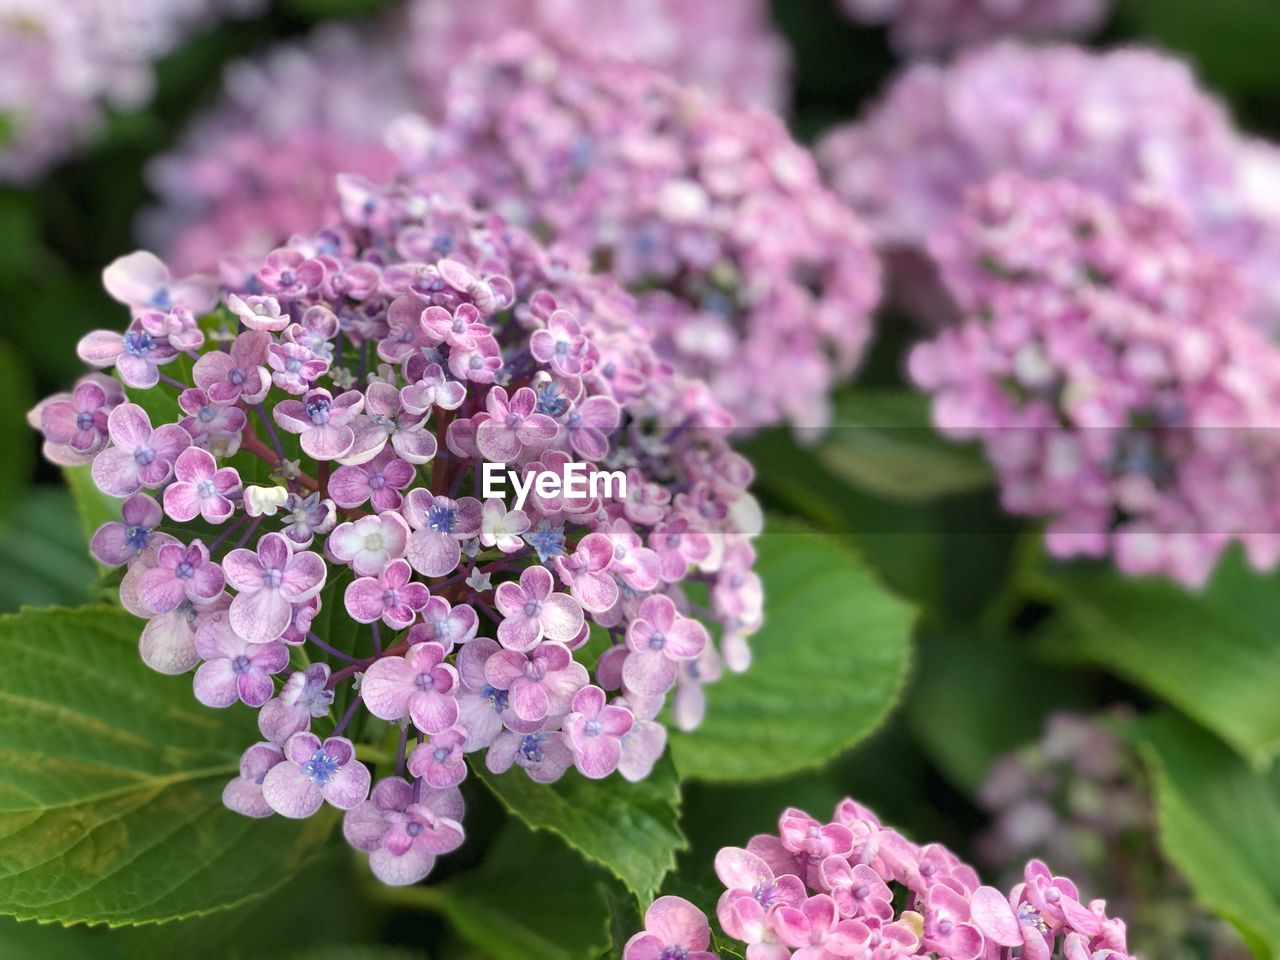 flowering plant, flower, beauty in nature, plant, freshness, vulnerability, pink color, fragility, growth, petal, close-up, nature, inflorescence, flower head, leaf, plant part, day, botany, lilac, no people, outdoors, bunch of flowers, lantana, purple